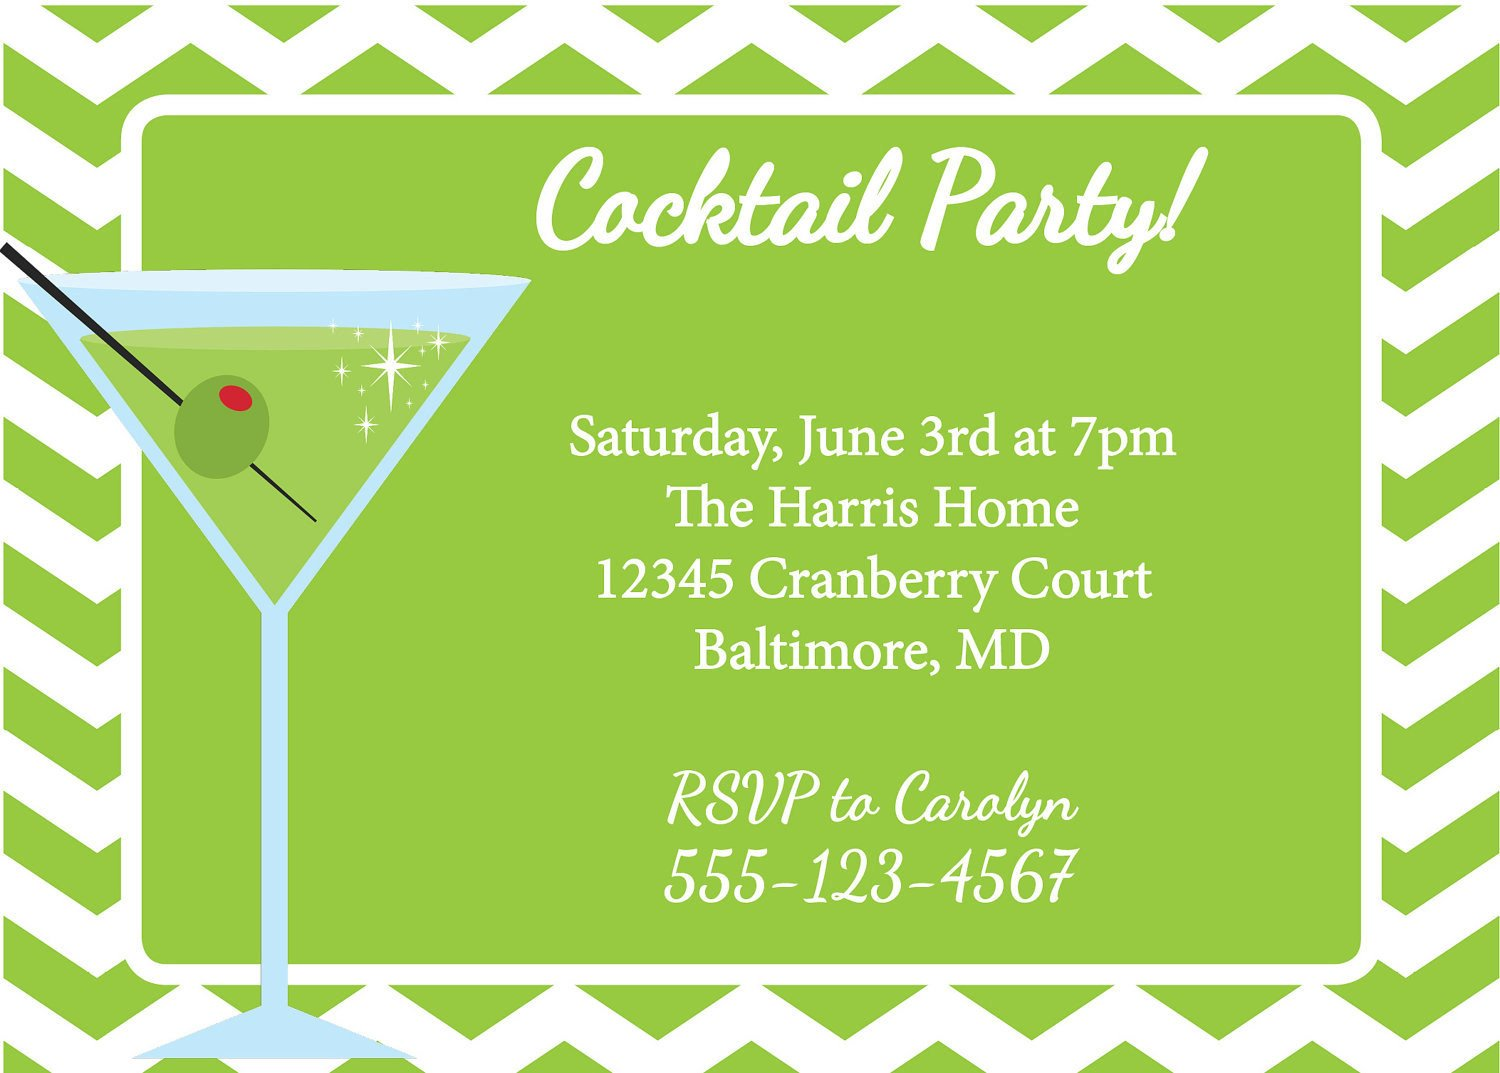 Cocktail Party Invitation Template Martini Invitation Cocktail Party Diy Printable by